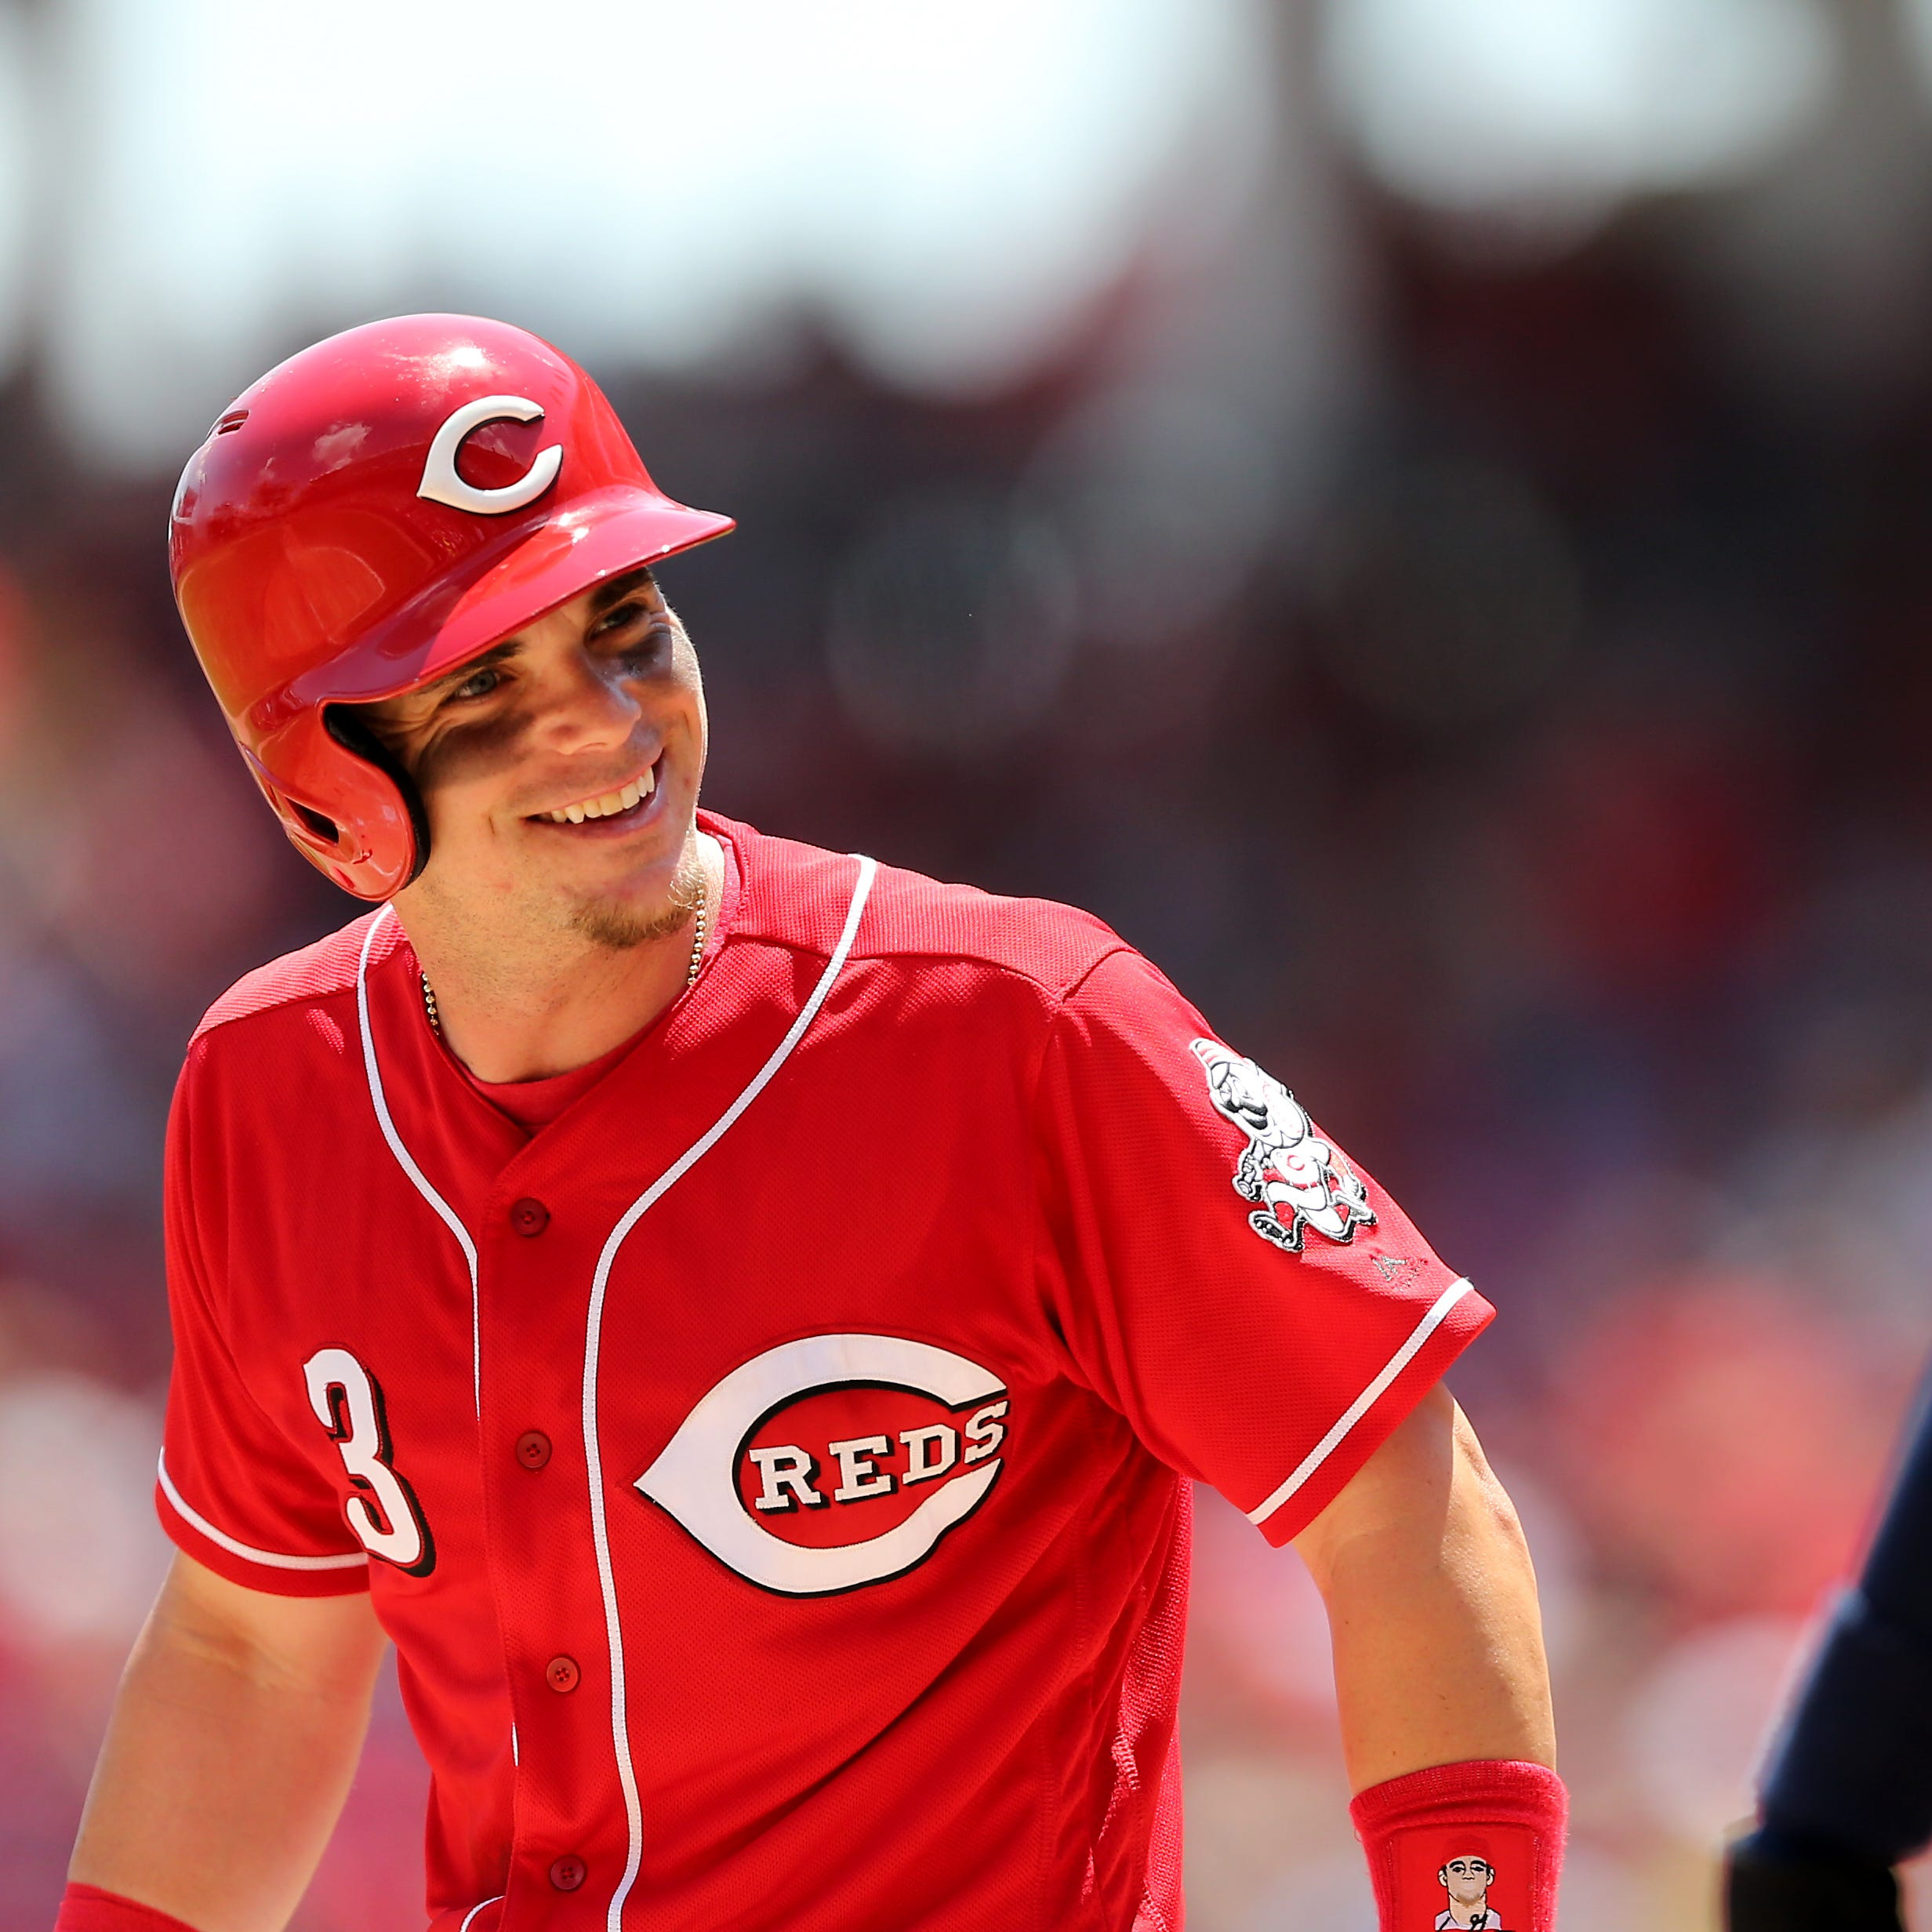 Healthy and motivated, Scooter Gennett is ready for the Cincinnati Reds' 2019 season